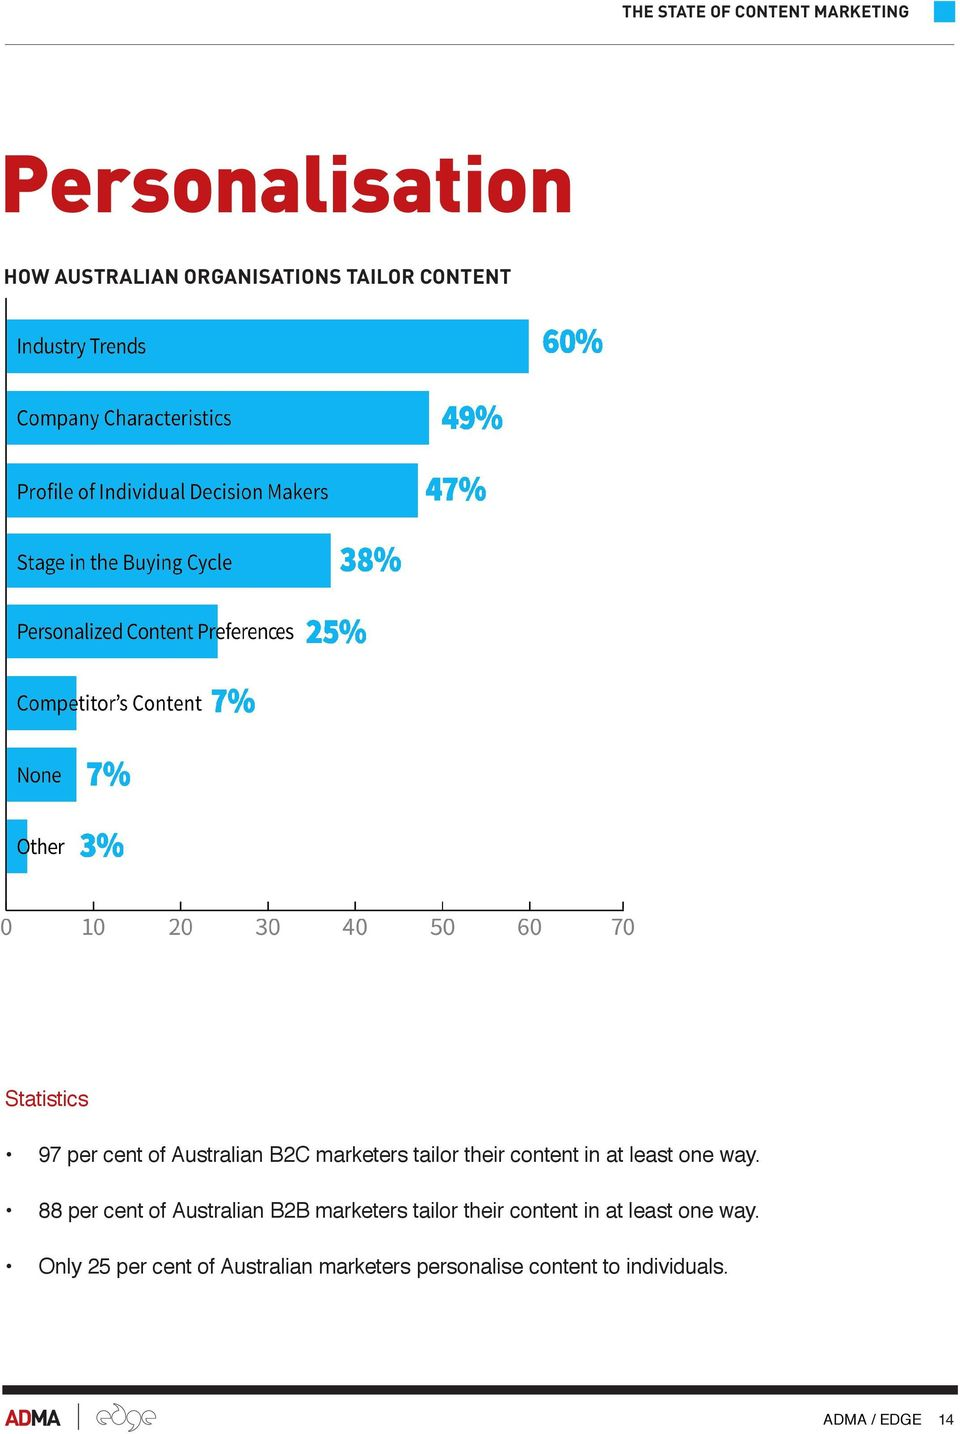 88 per cent of Australian B2B marketers tailor their content in at least one way.